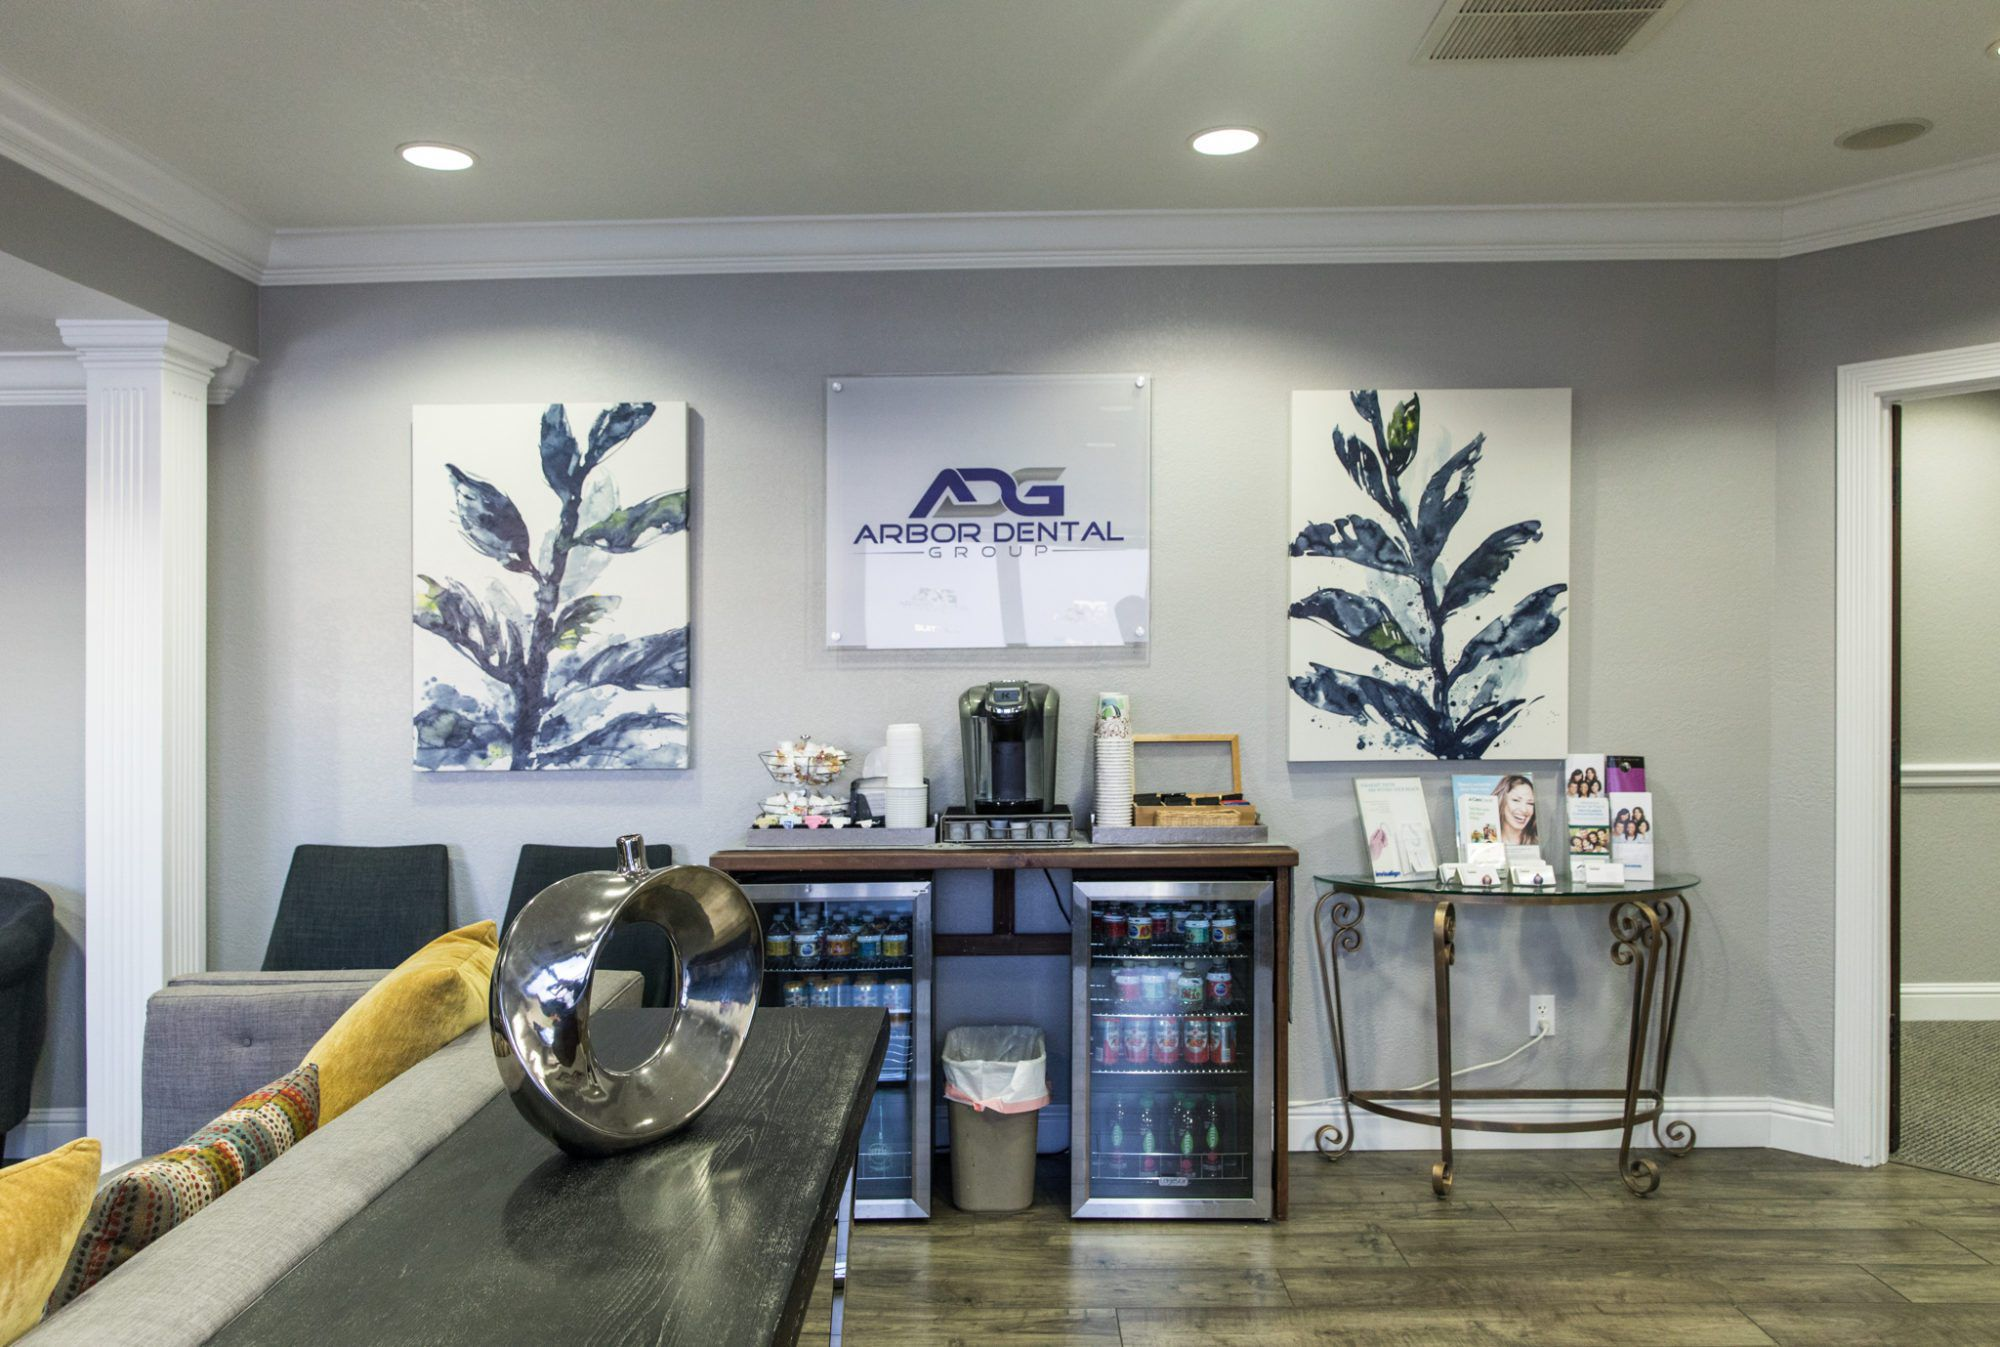 Refreshment center at Arbor Dental Group